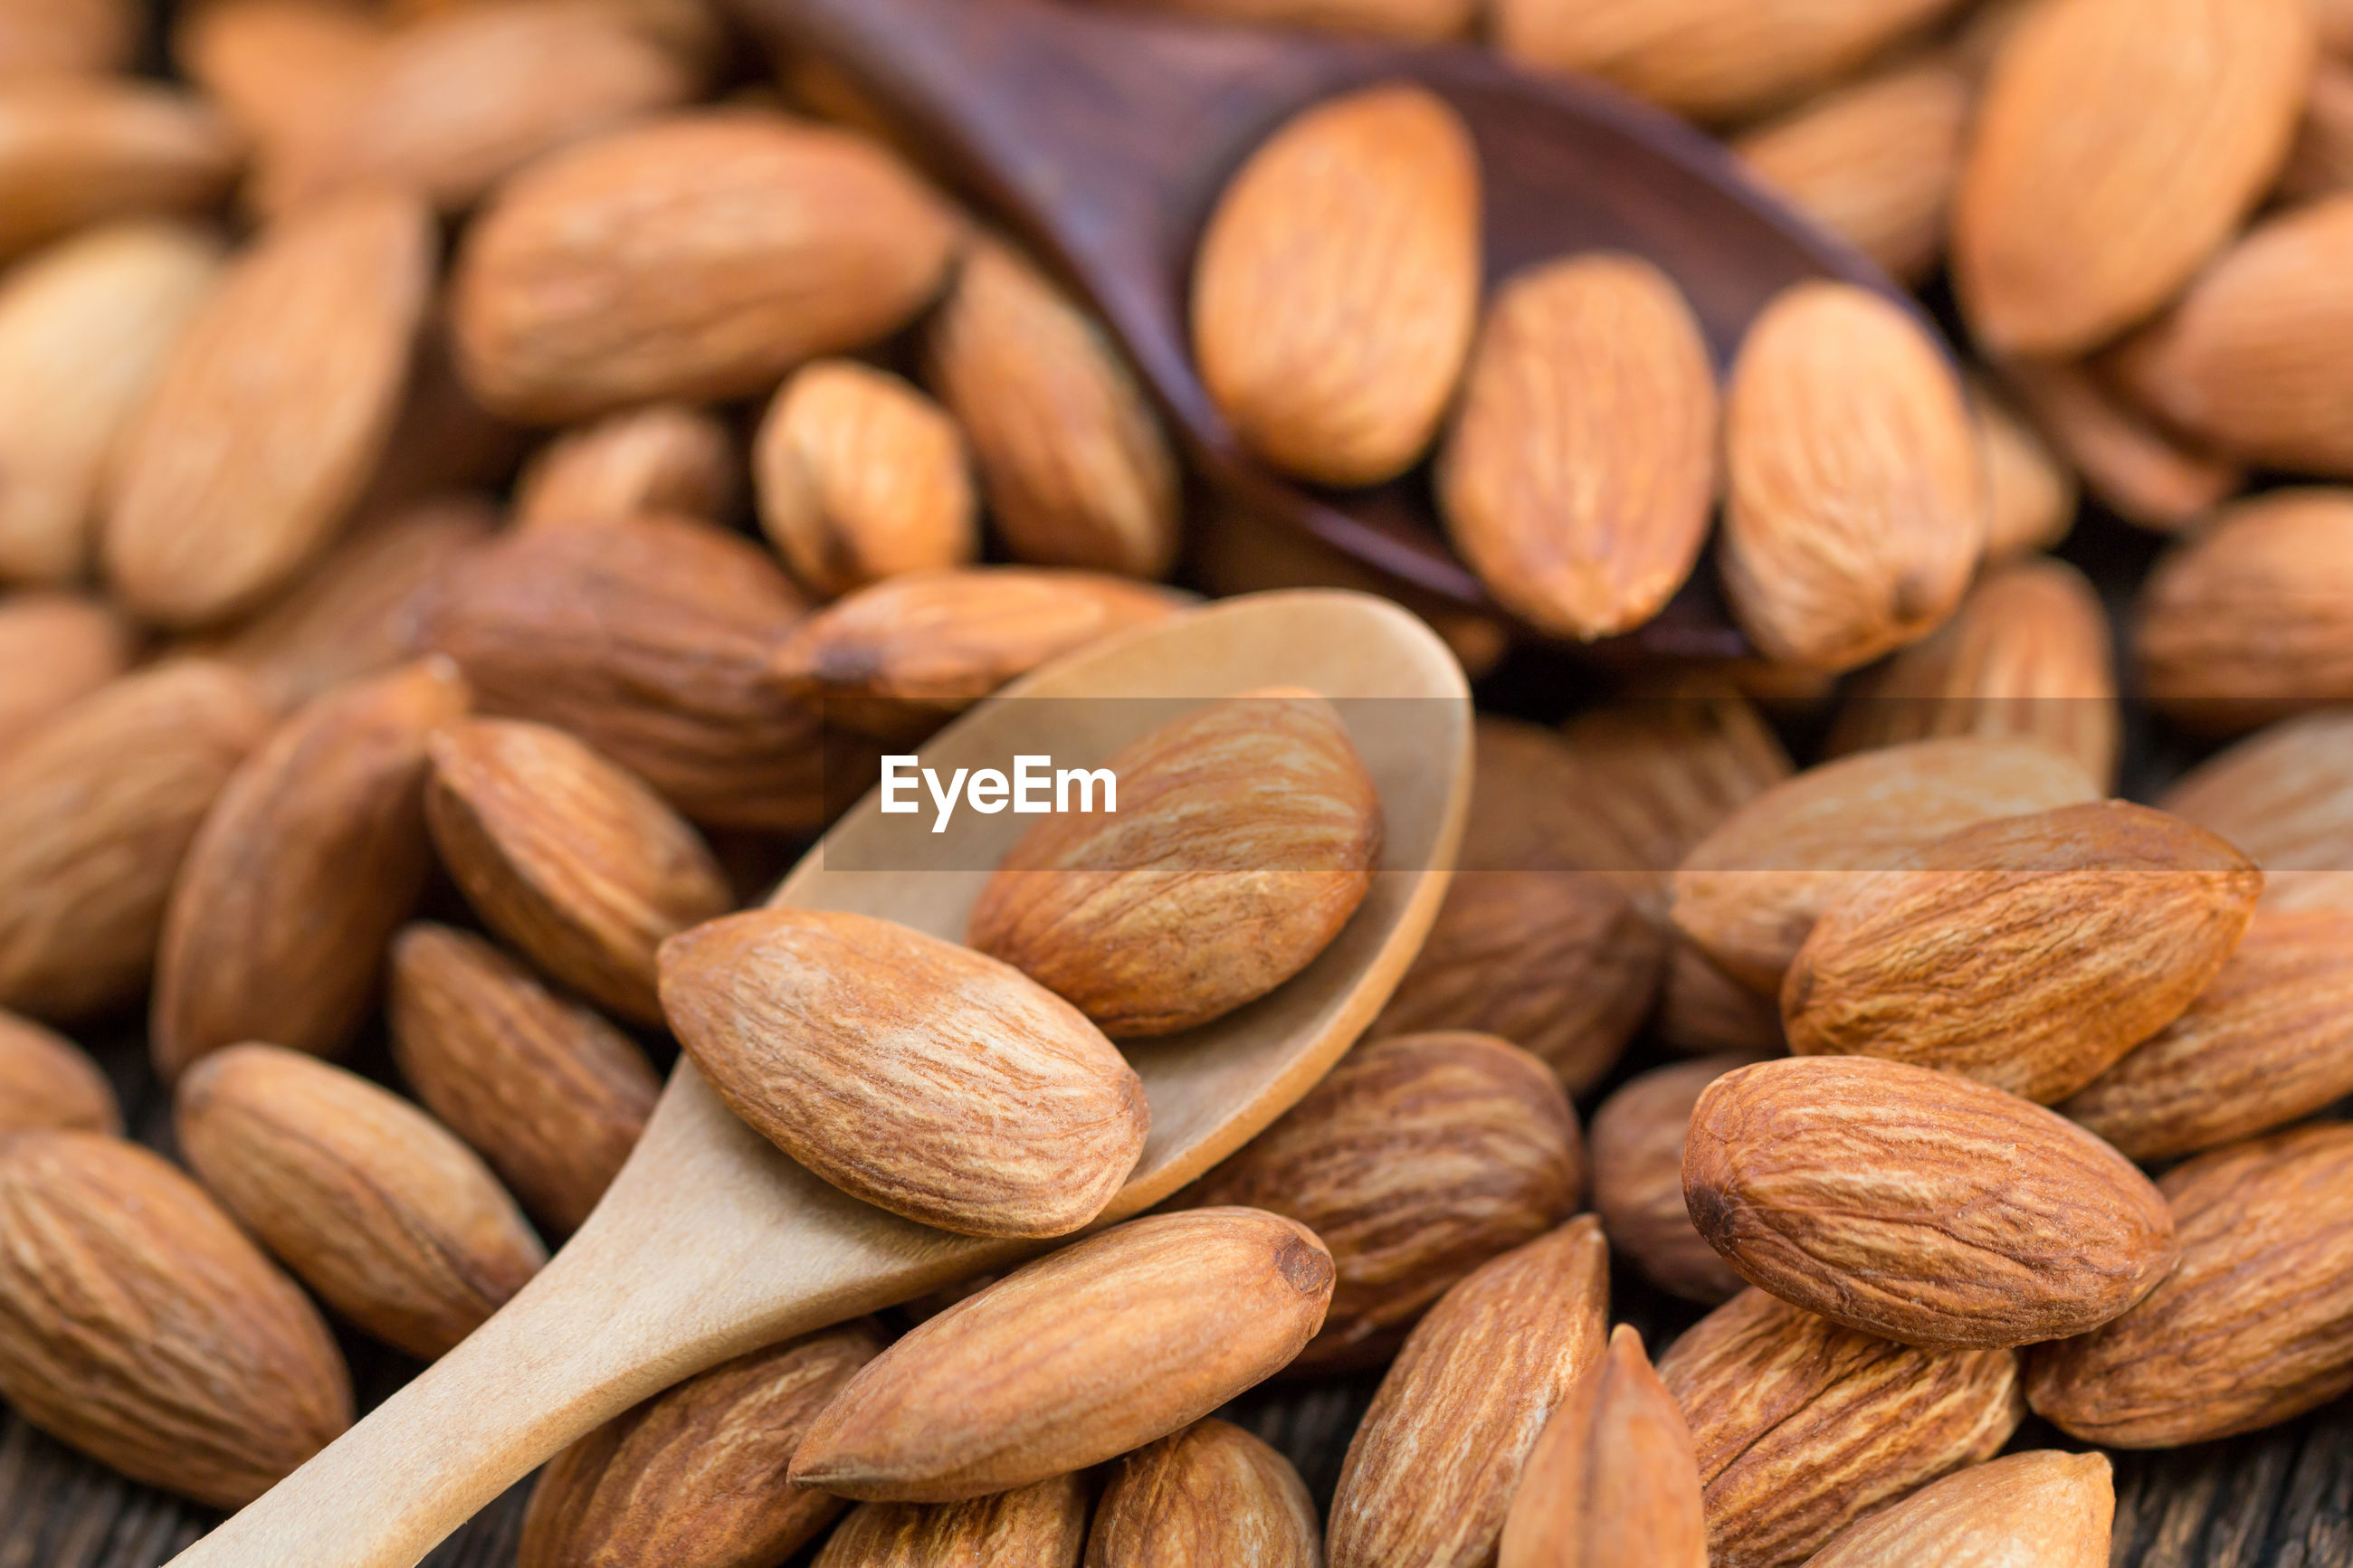 Close-up of almonds with spoon on table